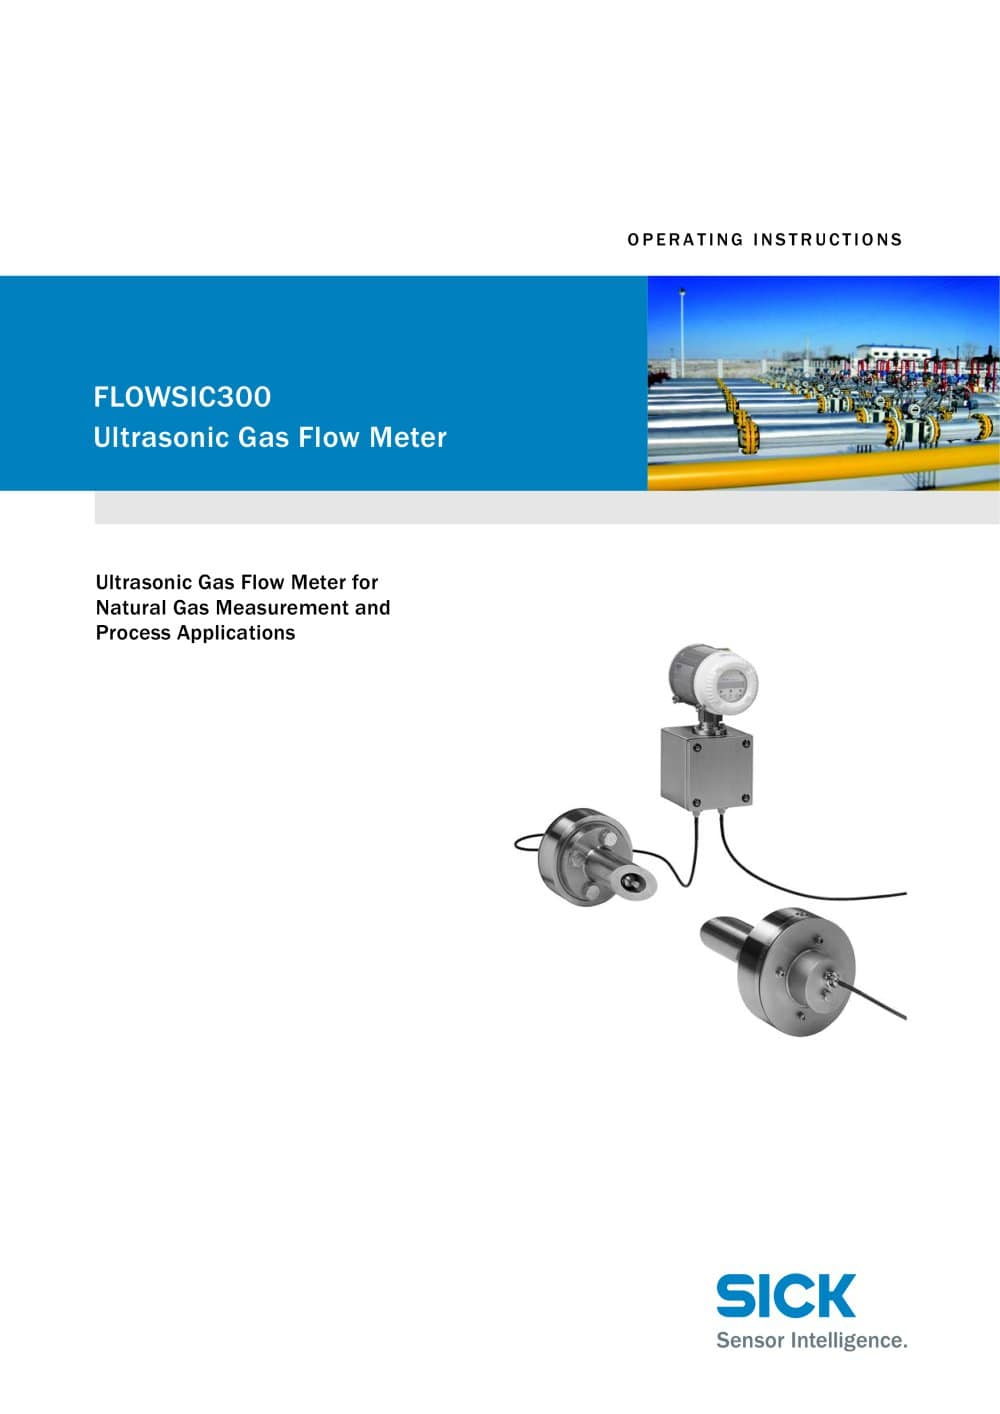 Flowsic300 Ultrasonic Gas Flow Meter Sick Sensor Intelligence Photoelectric Switch Wiring Diagram 1 177 Pages